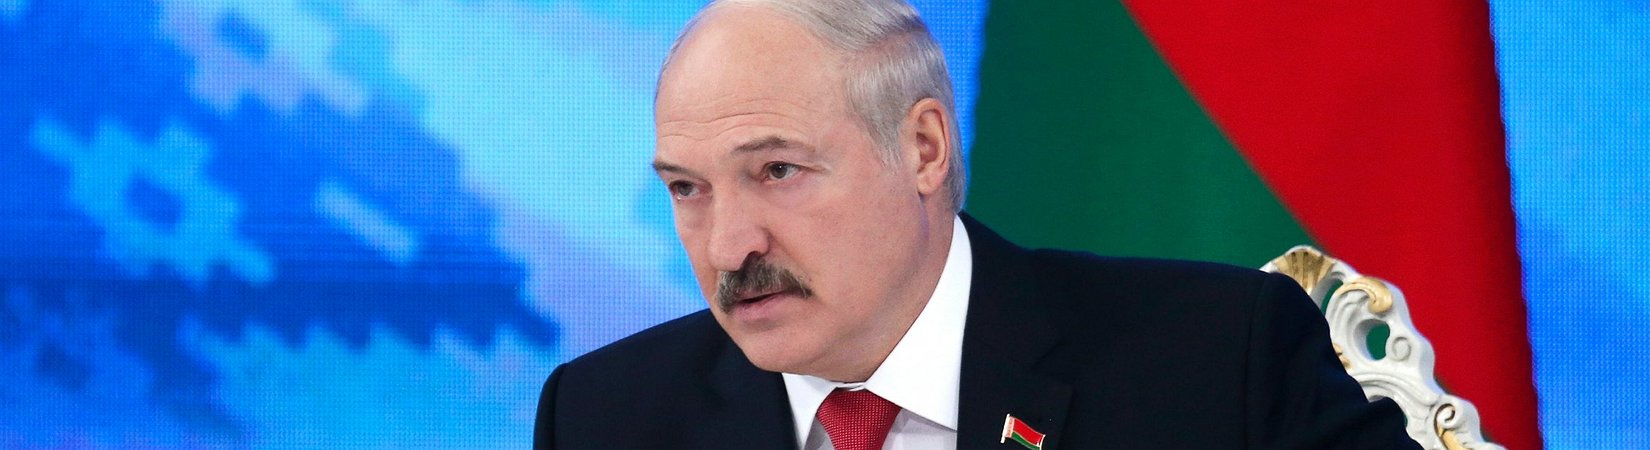 Belarus Signs Law Enabling Set-up of Cryptocurrency Hubs